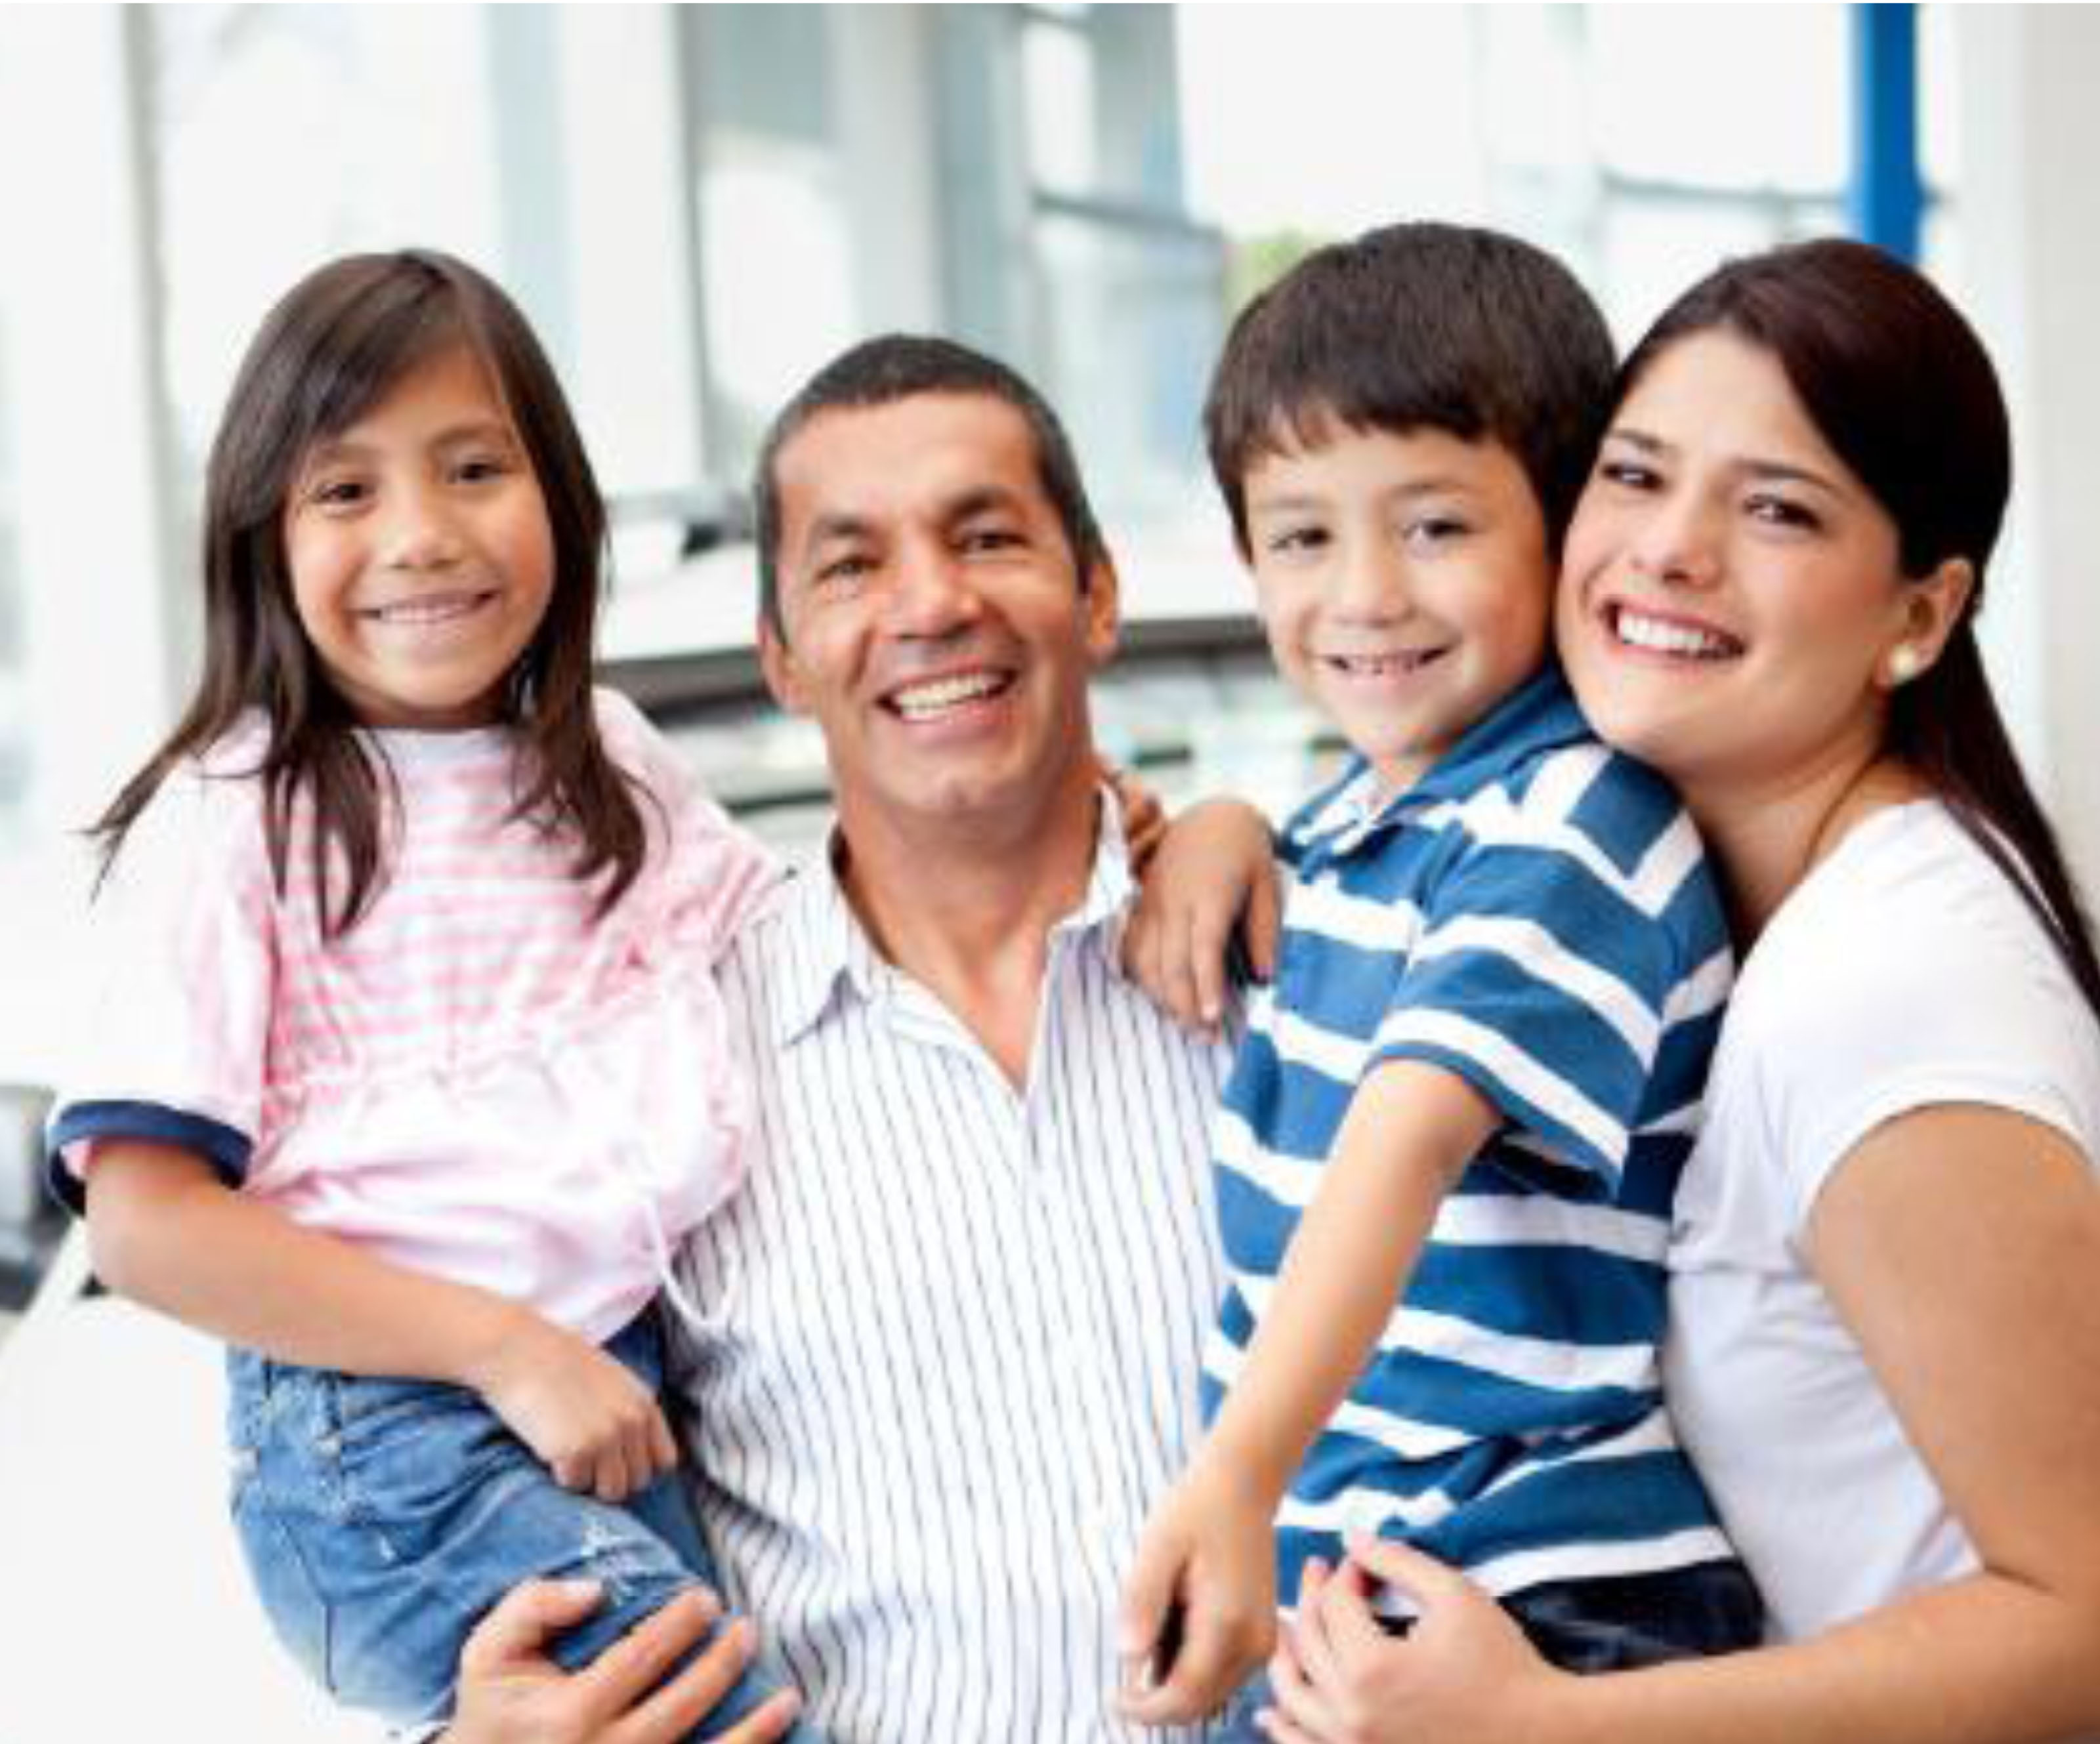 life insurance hispanic research